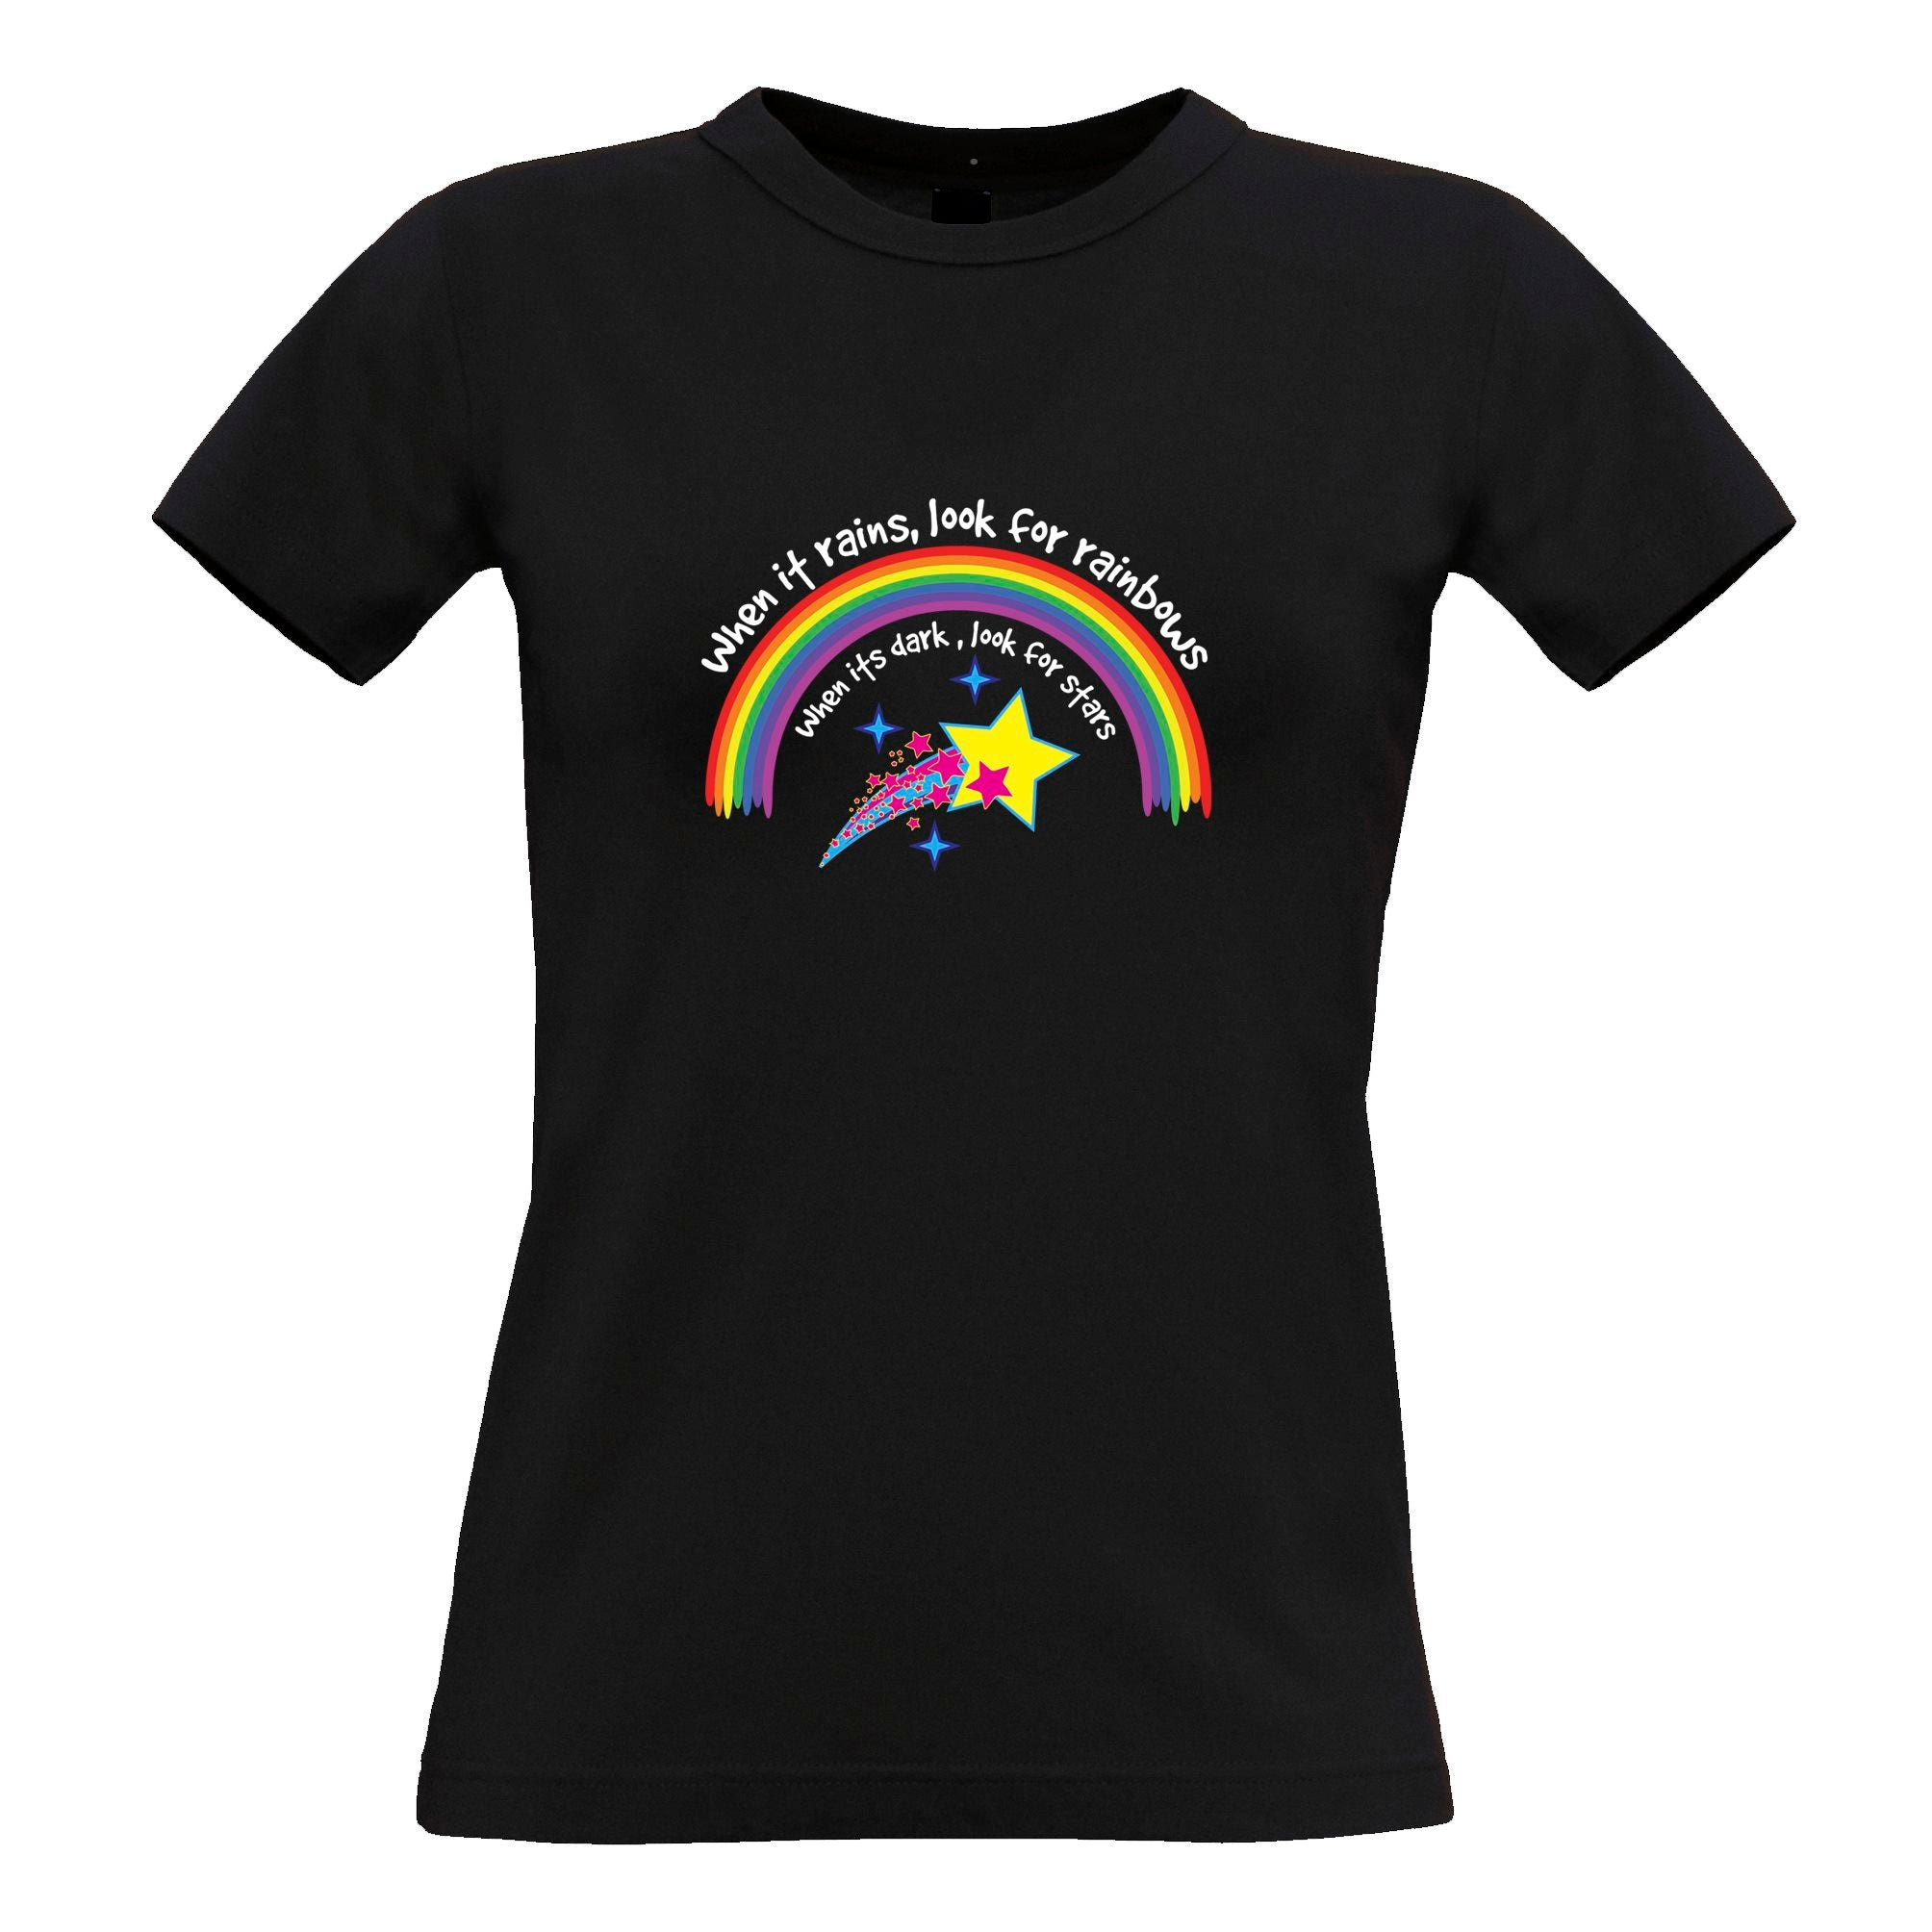 Inspirational Womens TShirt When It Rains, Look For Rainbows Tee